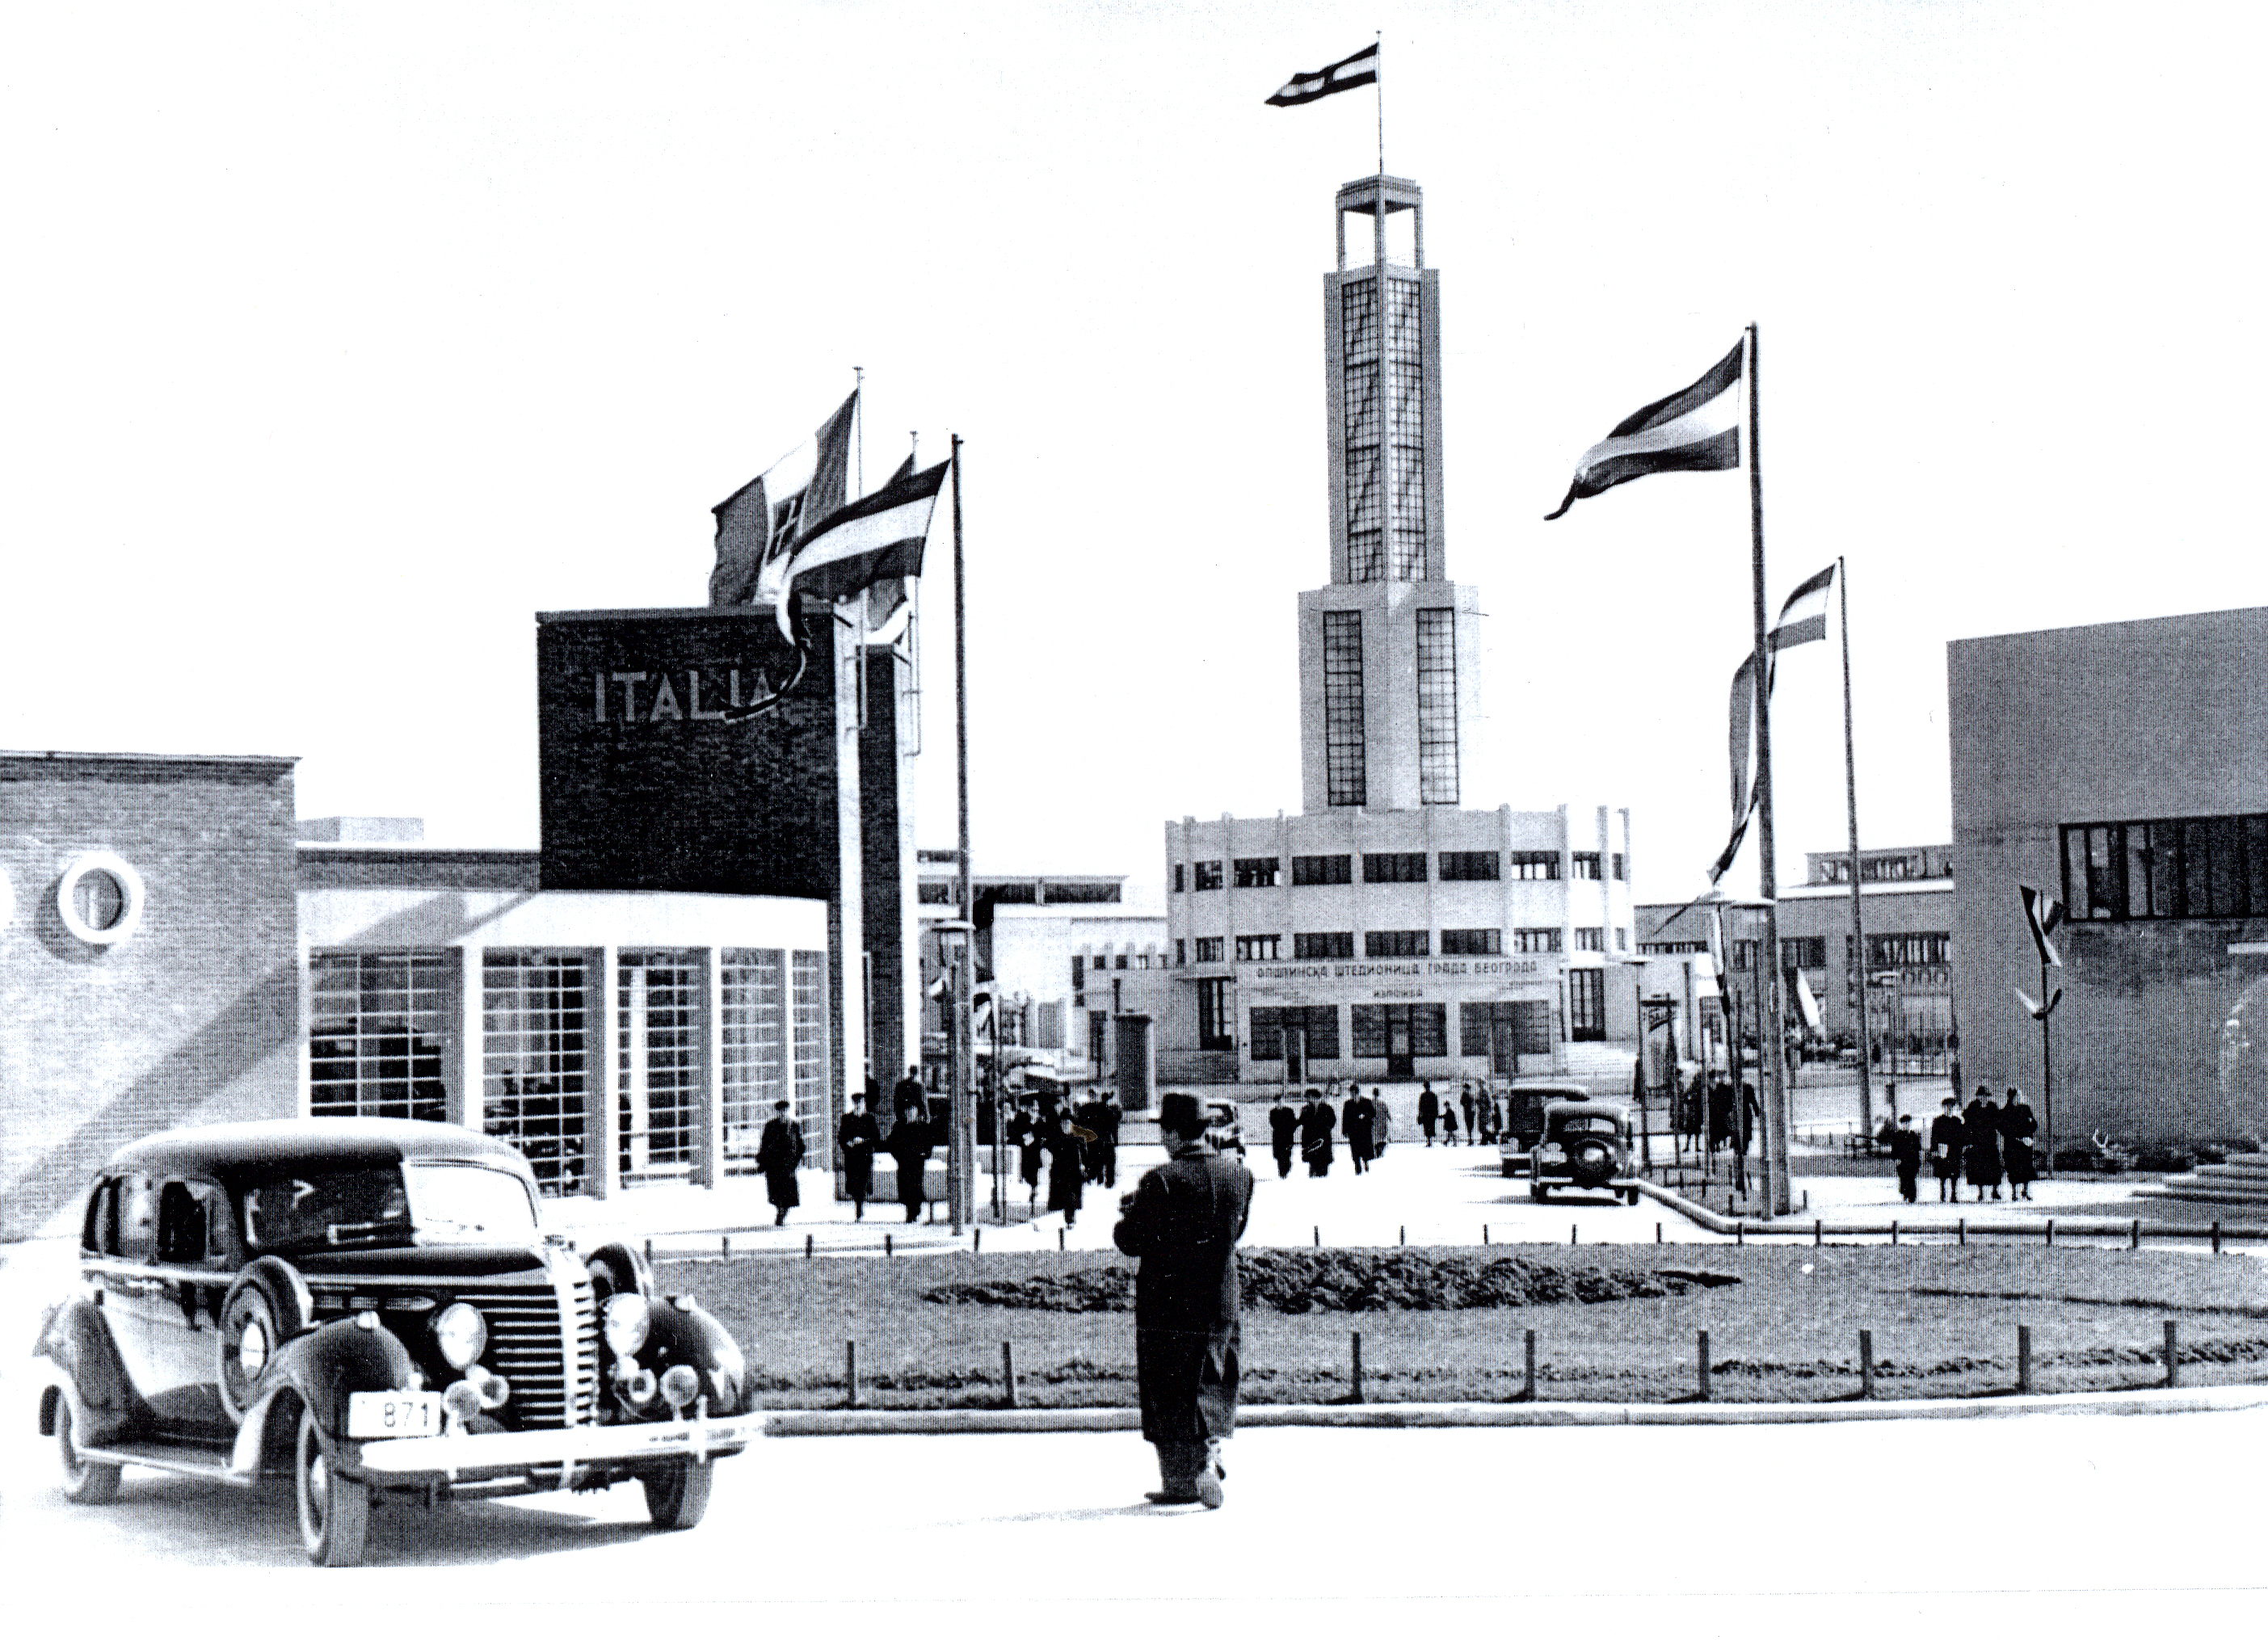 Italian pavilion and tower